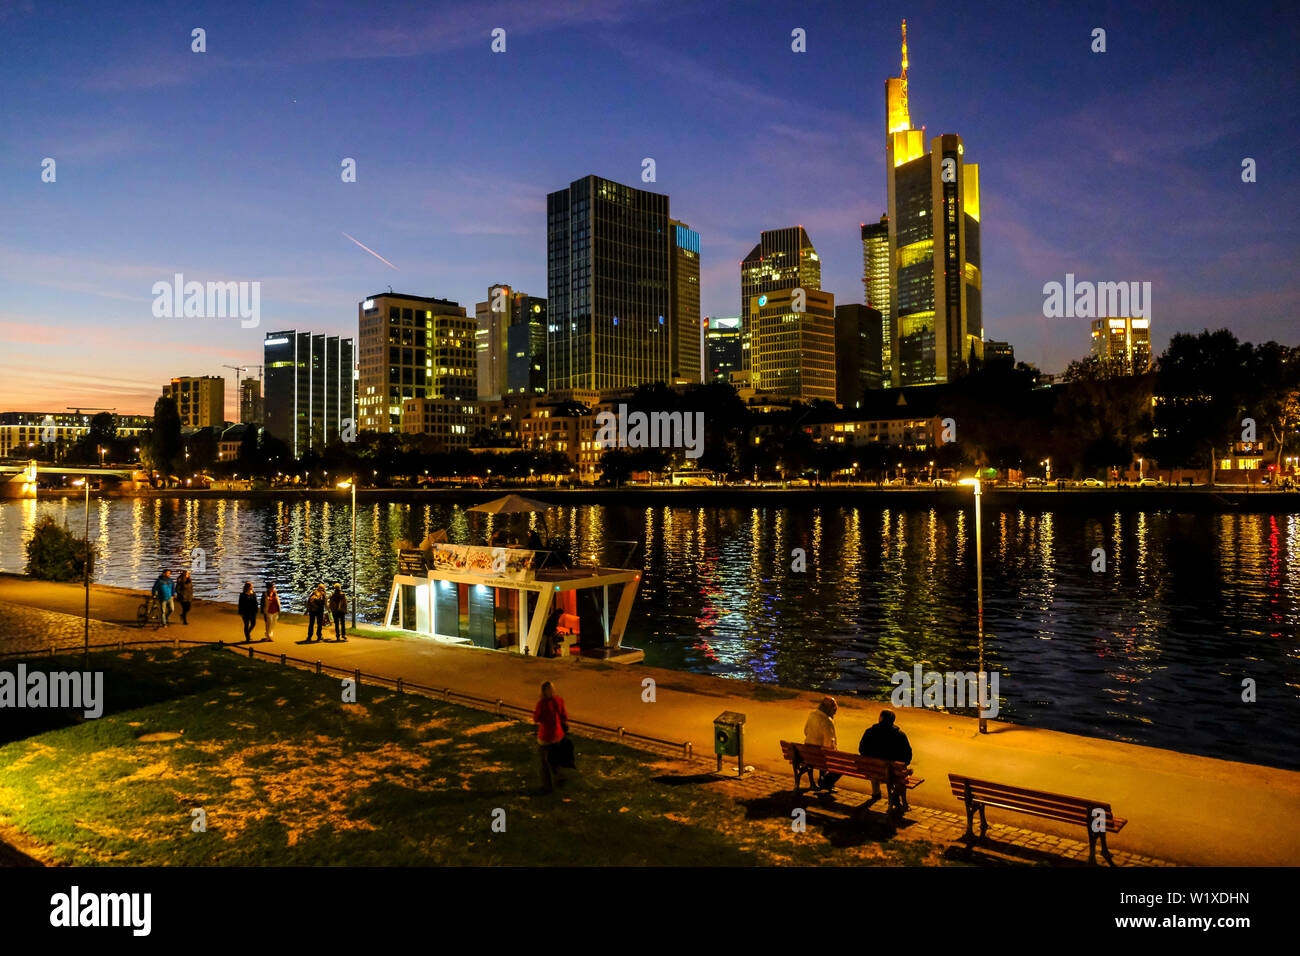 21.10.2018, Frankfurt am Main, Hesse, Germany - View at night from the Museumsufer over the River Main in Frankfurt to the Frankfurt skyline - Blick b Stock Photo